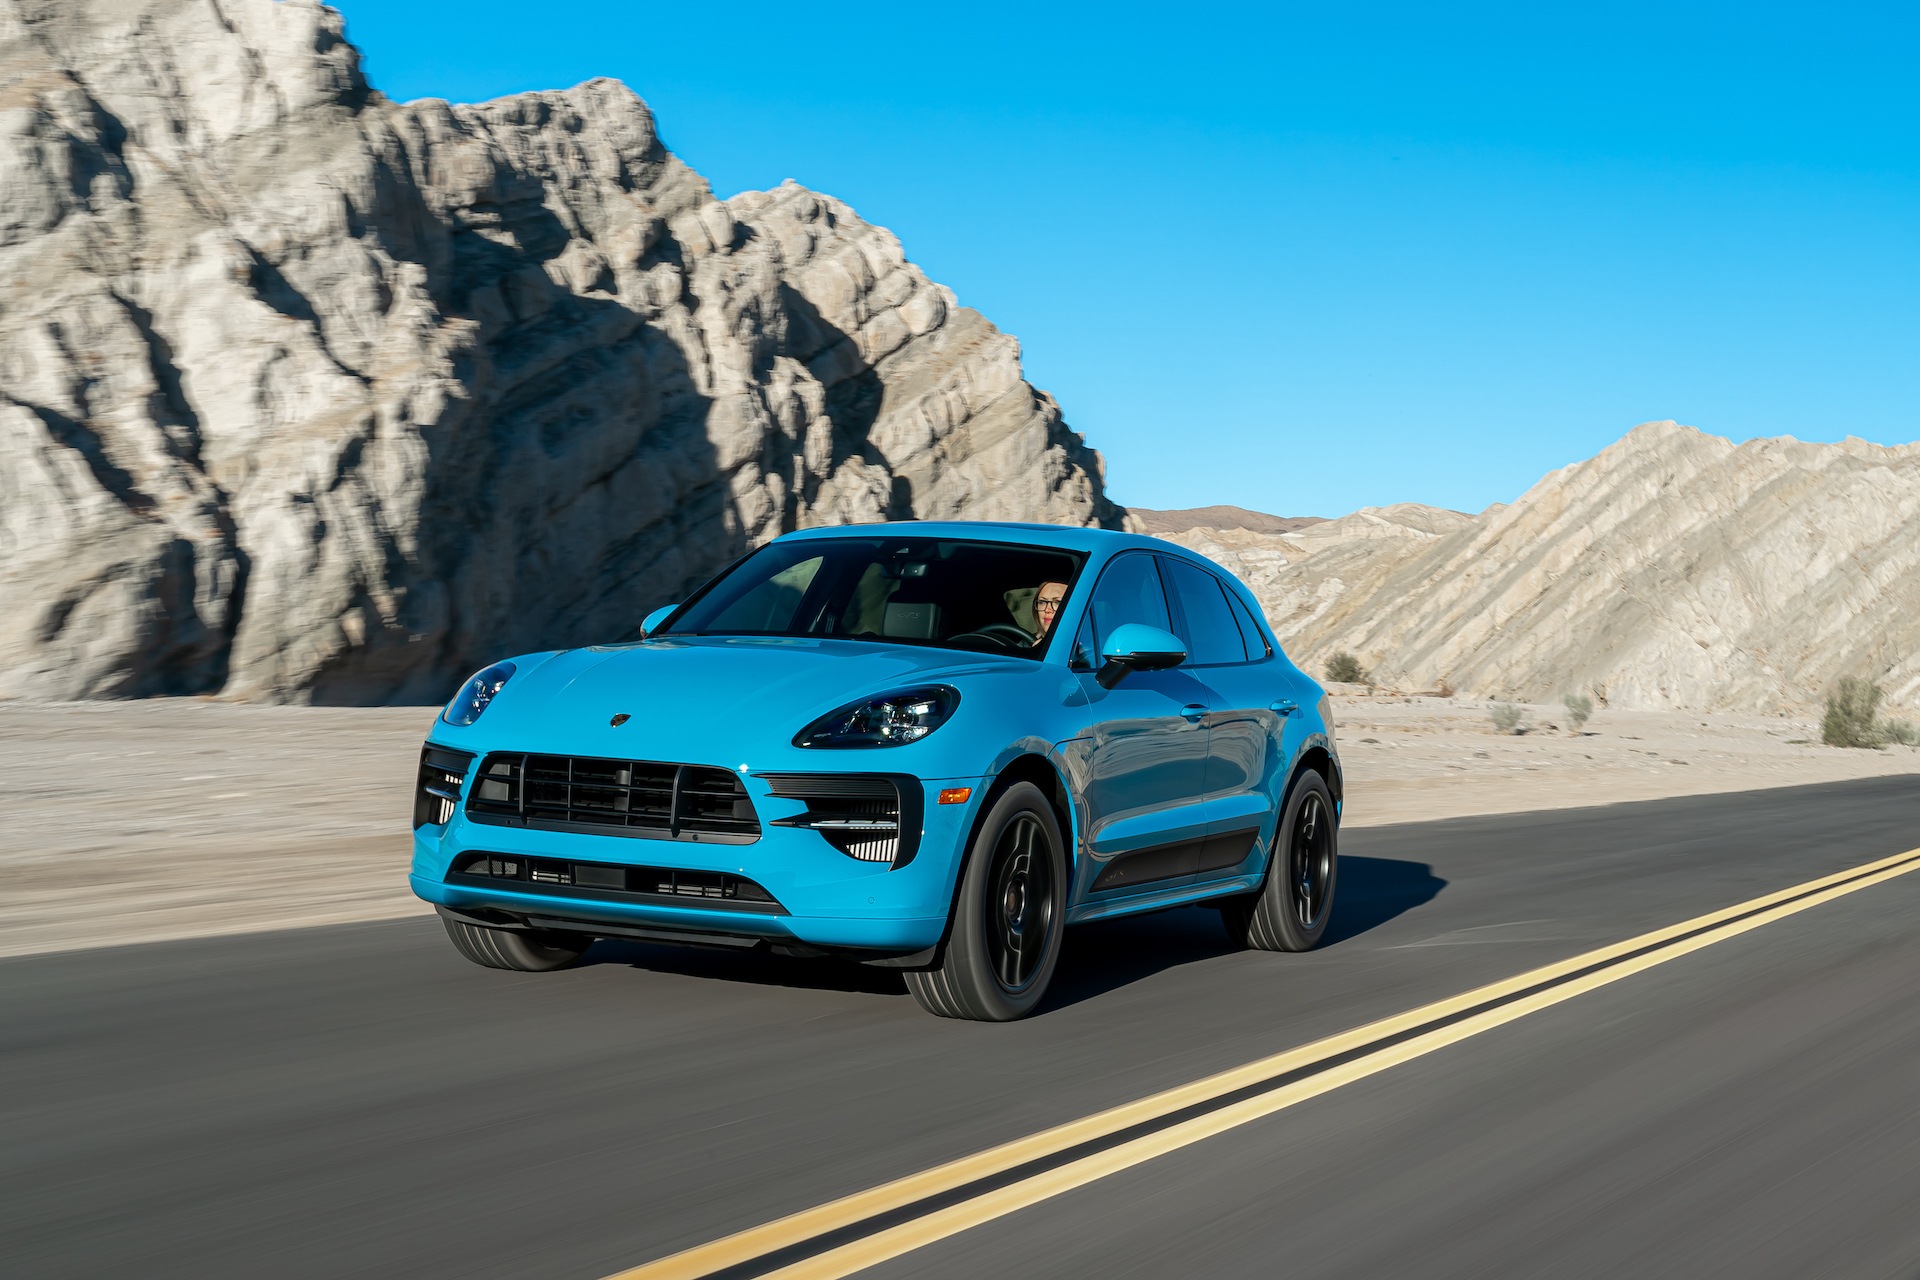 First drive review: 2020 Porsche Macan GTS excites like the hot hatch it is